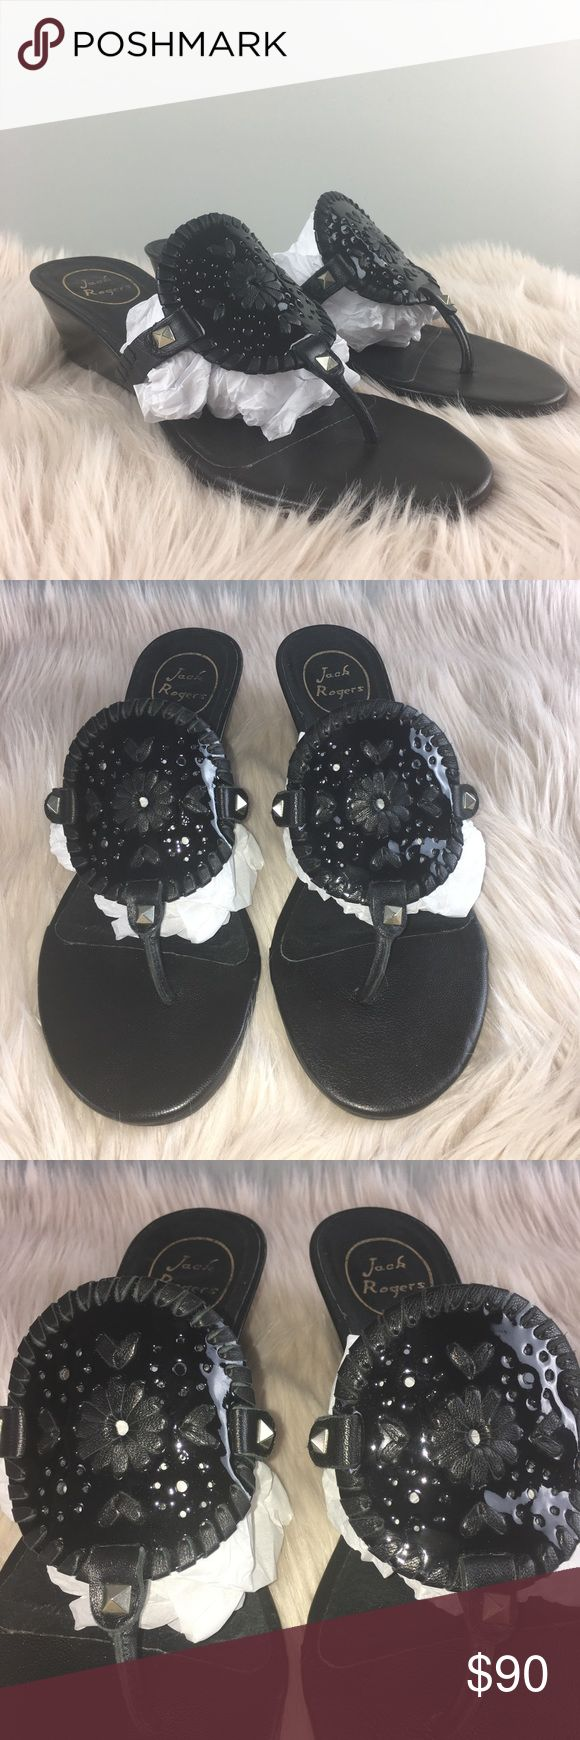 """Jack Rogers Mid Wedge Sandal Jack Rogers """"Devyn"""" Mid Wedge Sandal. Black With Stud Detail. The size wore off the Sticker, so I measured the Footbed and I would say 10 1/4"""" would be the Footbed area. You can view the picture and decide for yourself! There may be a conversion chart online to help out! I would like to say these are a 9. Please ask any questions prior to Purchase if Unsure. 2"""" Wedge Heel. Perfect for the Spring Summer!! Jack Rogers Shoes Sandals"""